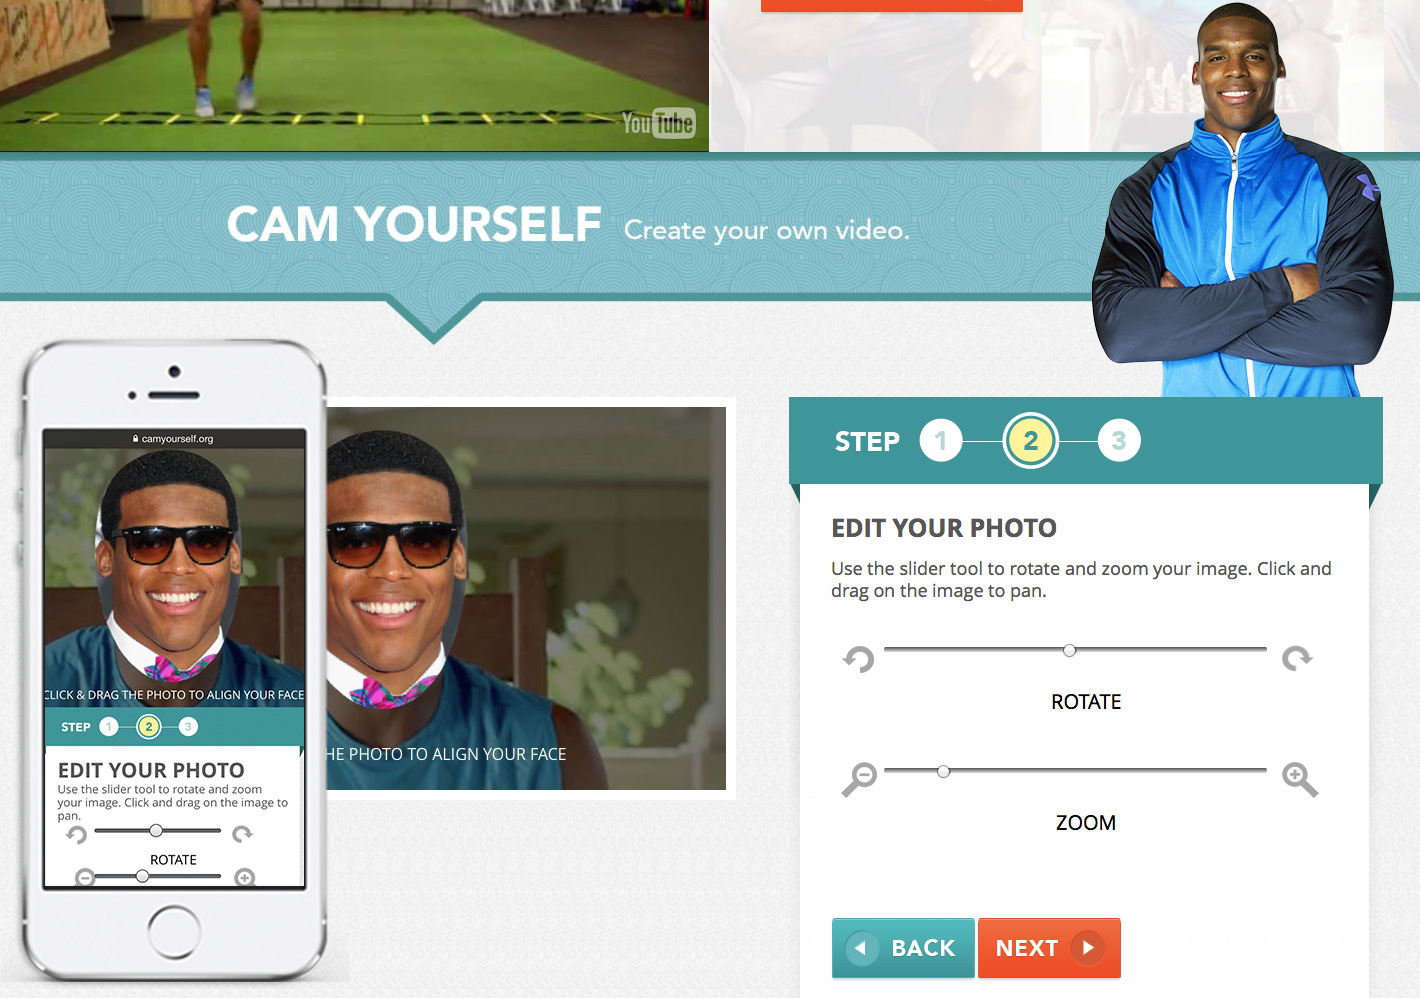 CamYourself.org